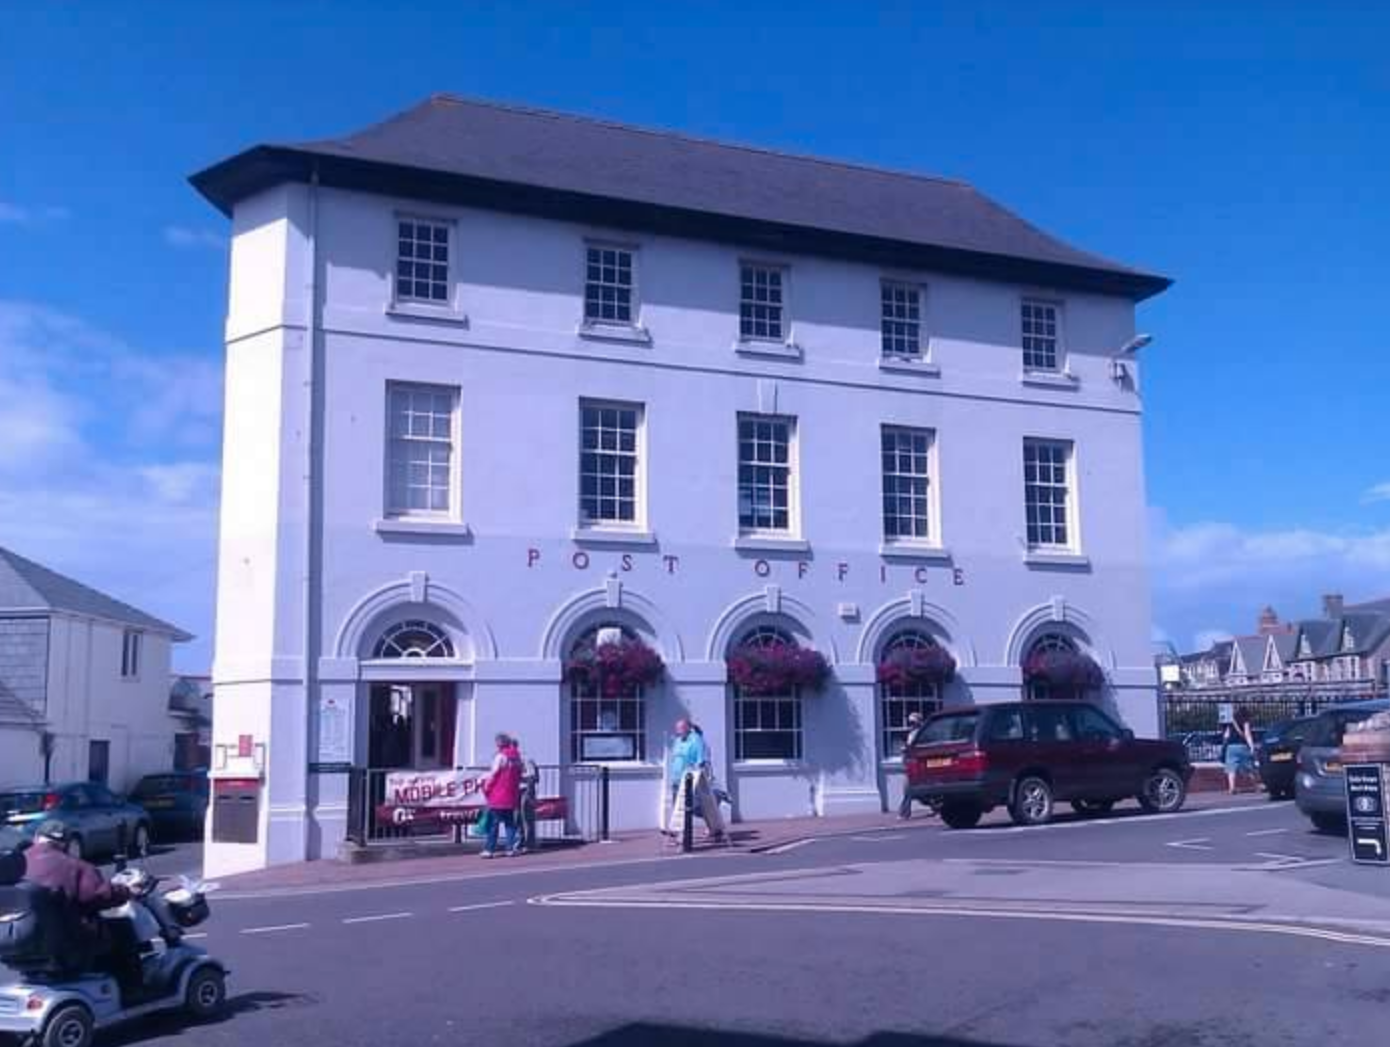 Above: Bude Post Office is a hub of the community.